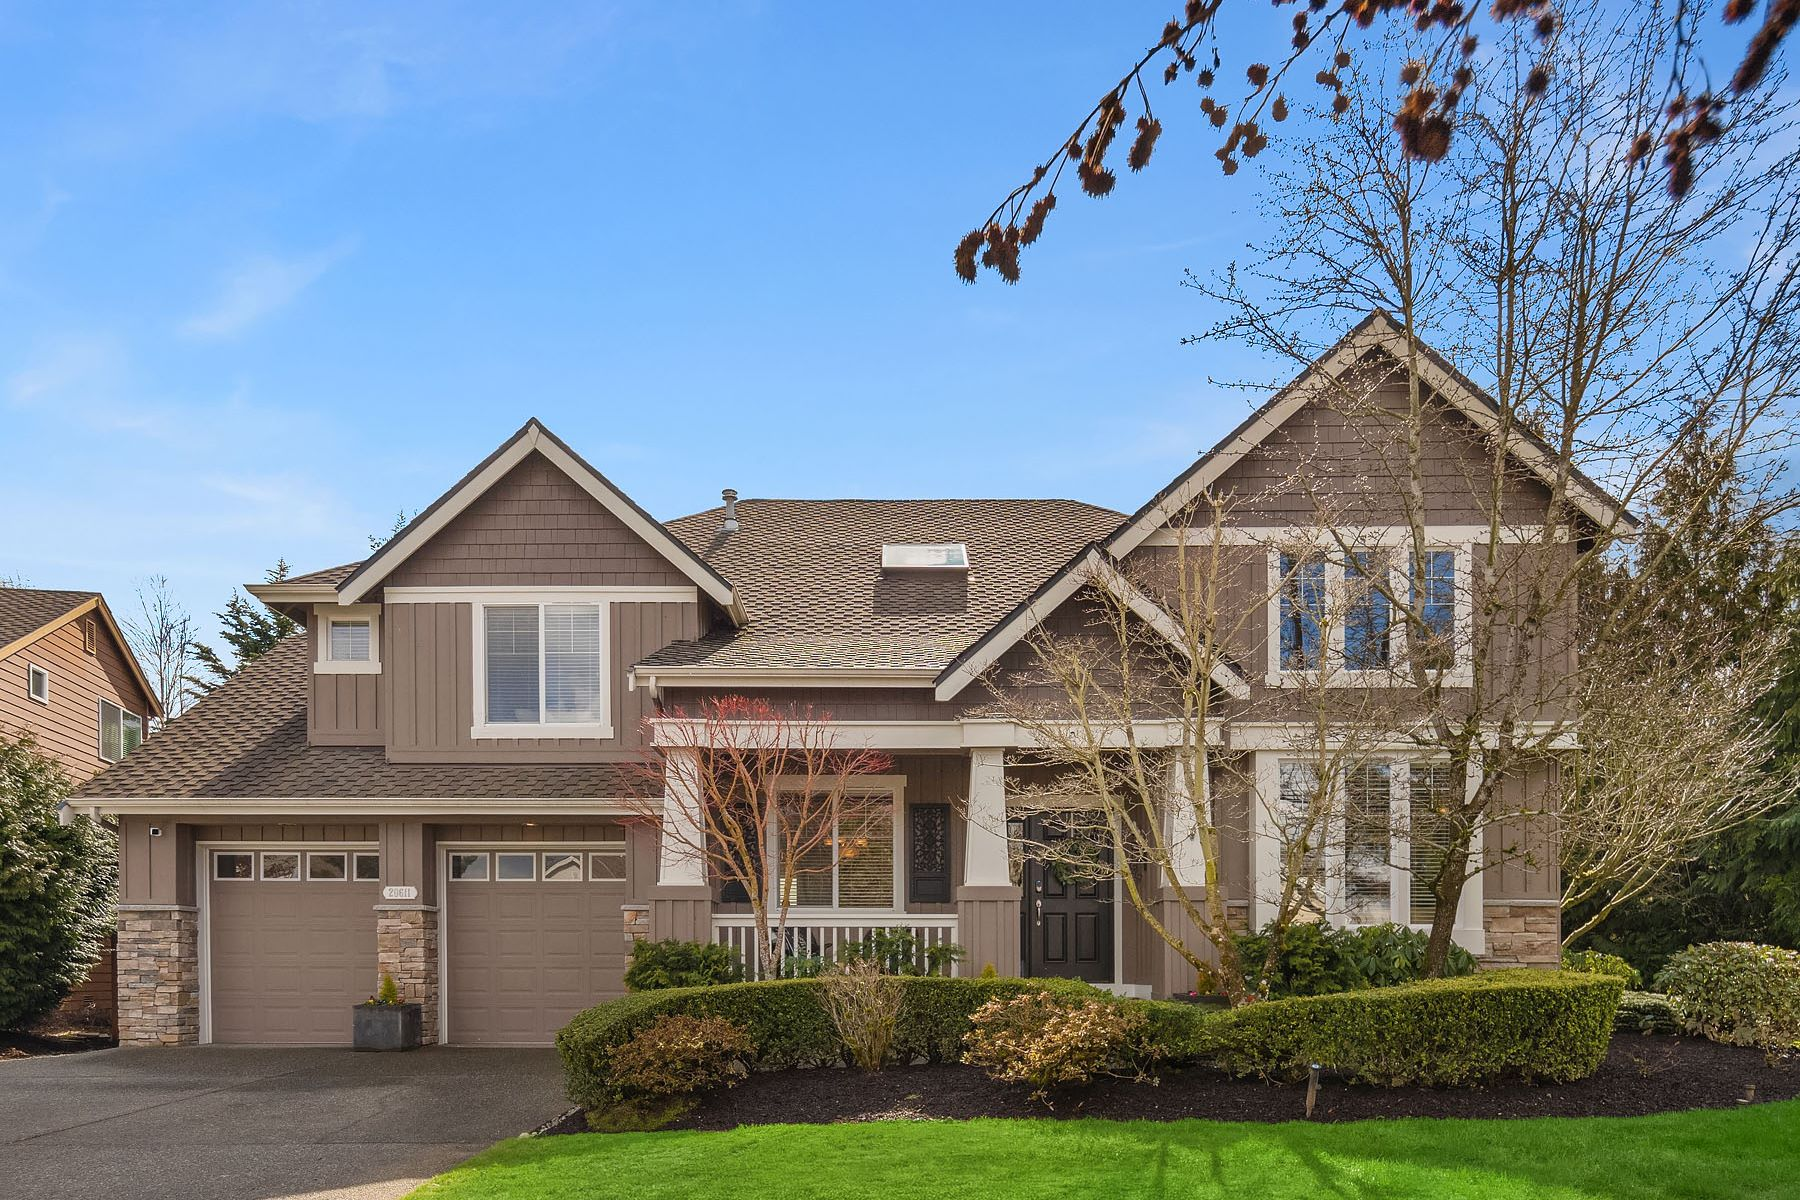 Single Family Homes for Sale at Country Chic Living 20611 NE 25th Ct Sammamish, Washington 98074 United States